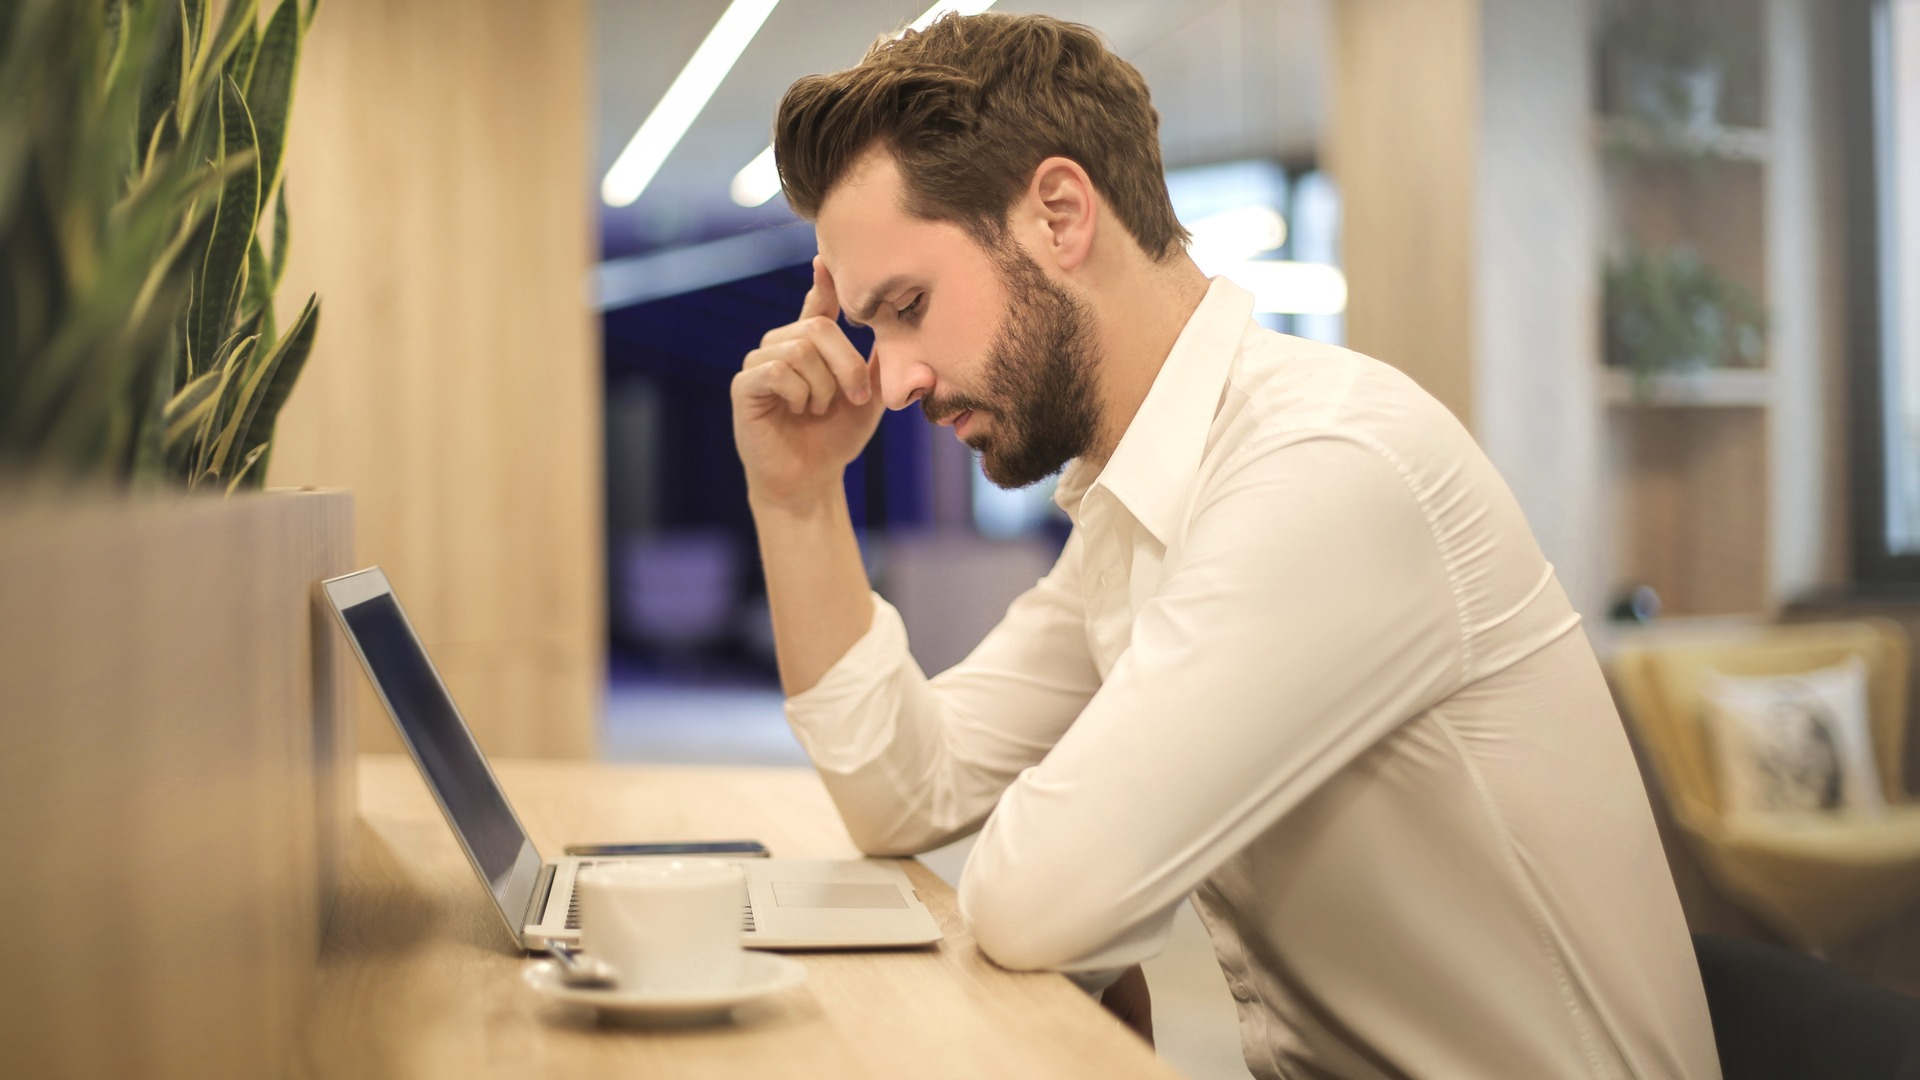 Four foolproof ways to manage business stress